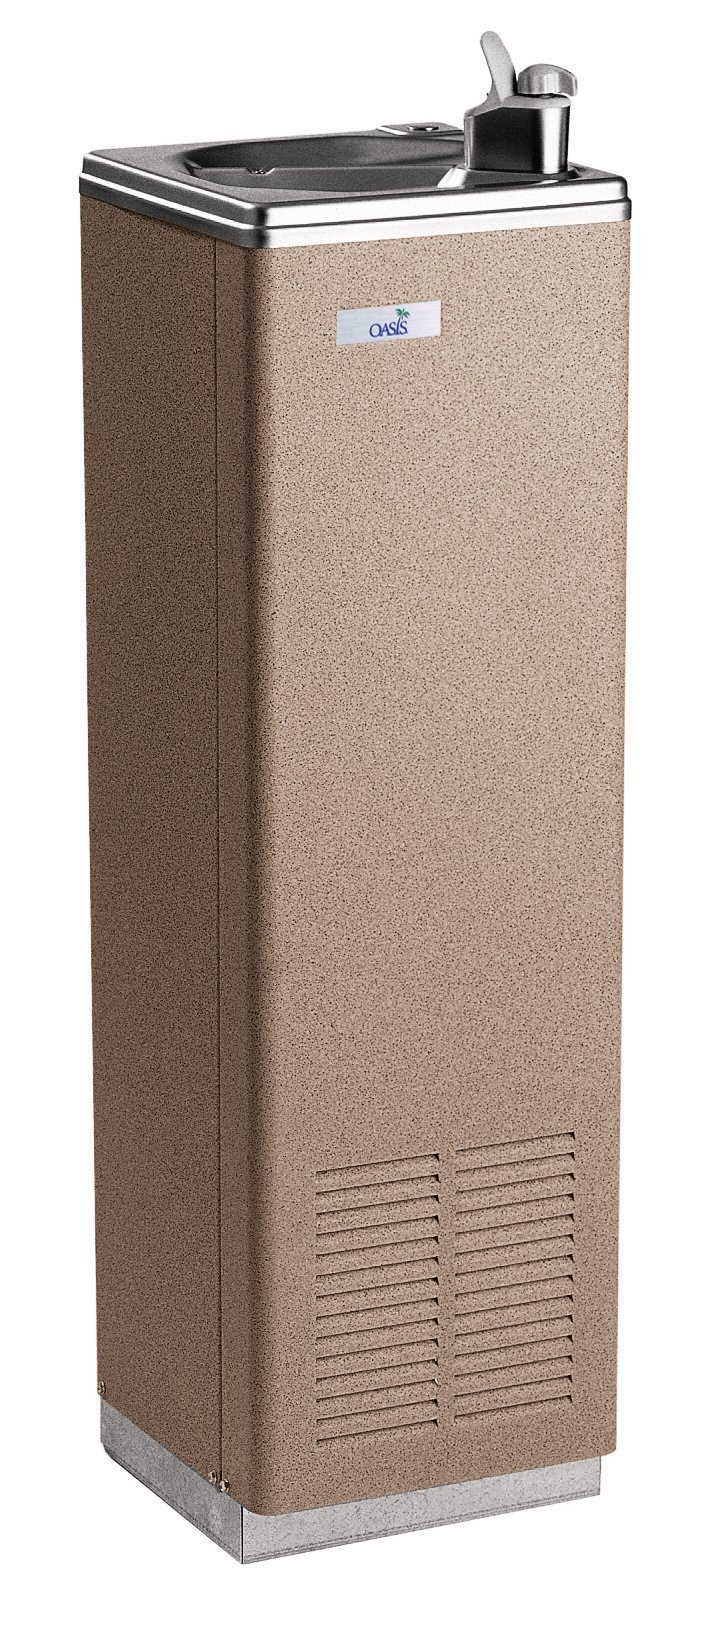 Oasis P5CP Compact Free-Standing Cool Water Drinking Fountain, 5 GPH, Sandstone